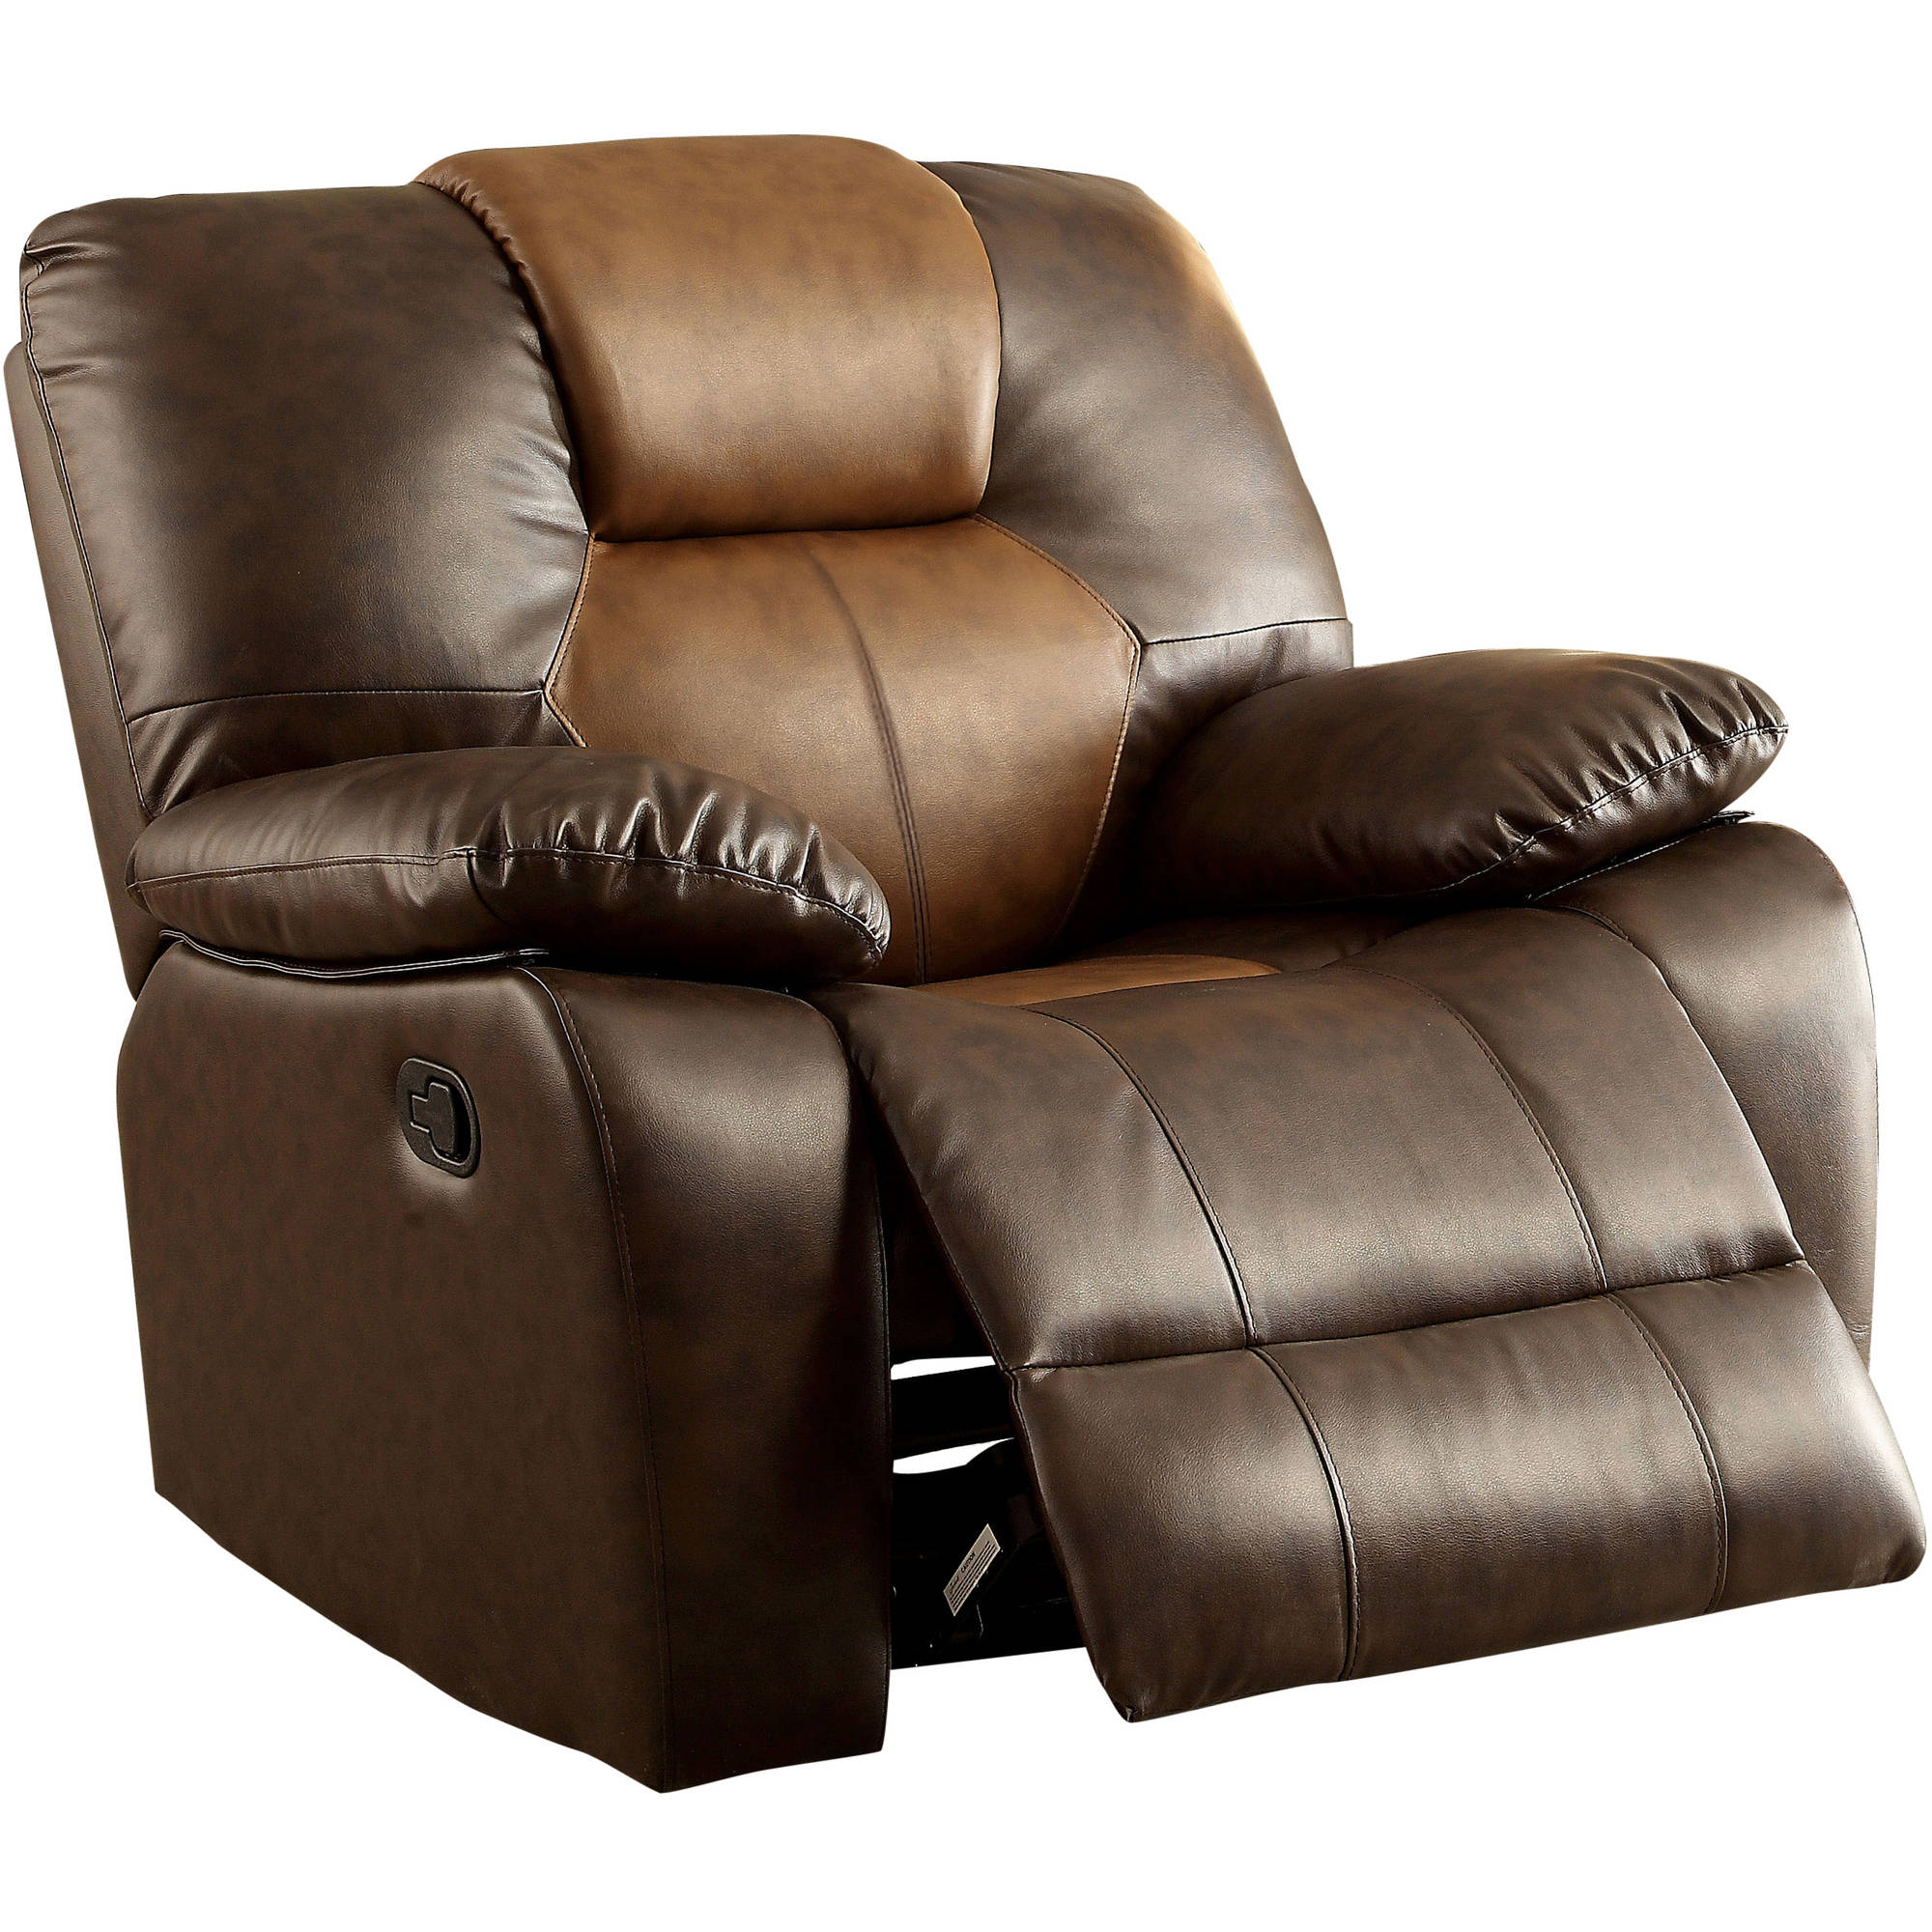 Furniture of America Genna Swivel Glider Recliner Brown  sc 1 st  Walmart & Swivel Recliner Chairs islam-shia.org